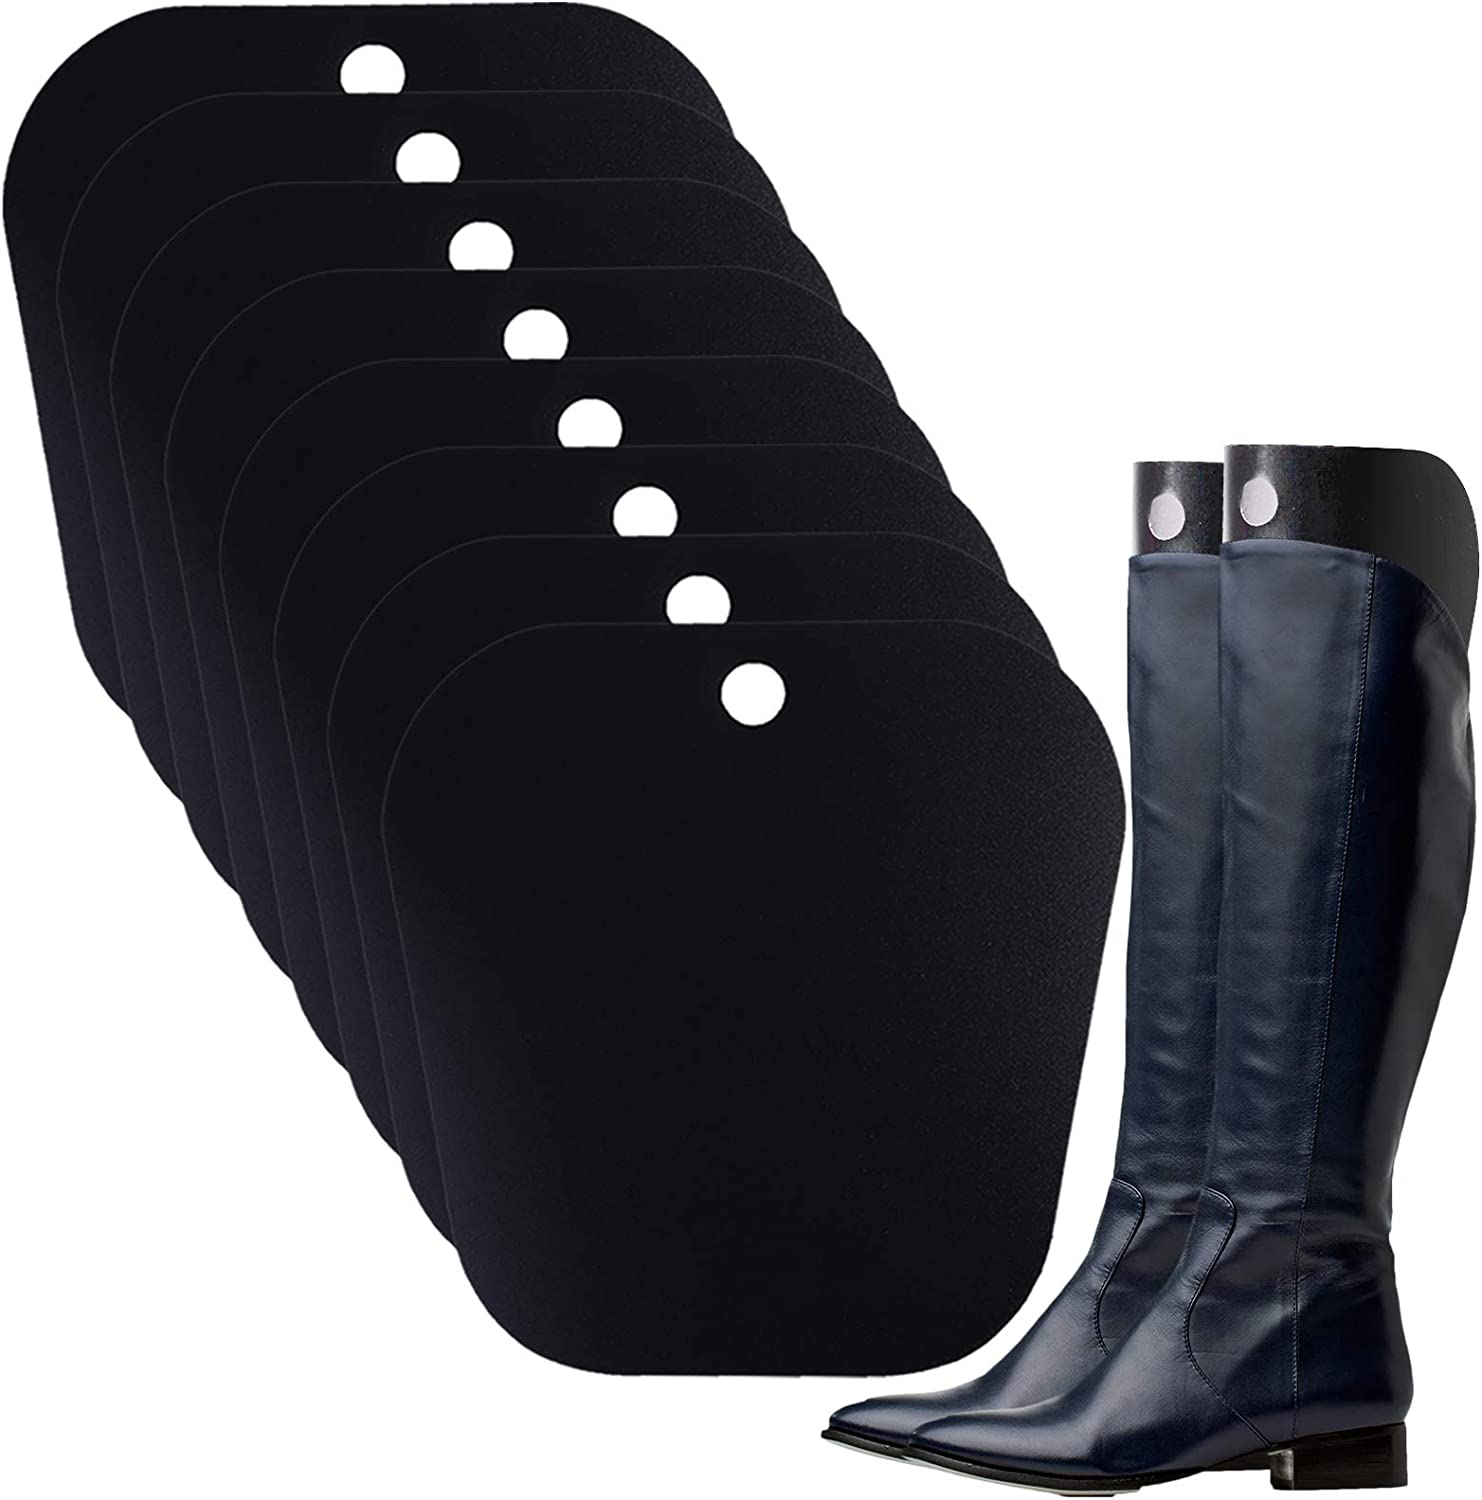 Ruisita 4 Pairs Tall Boot Trust Shaper Inserts Support Directly managed store for Boots Form